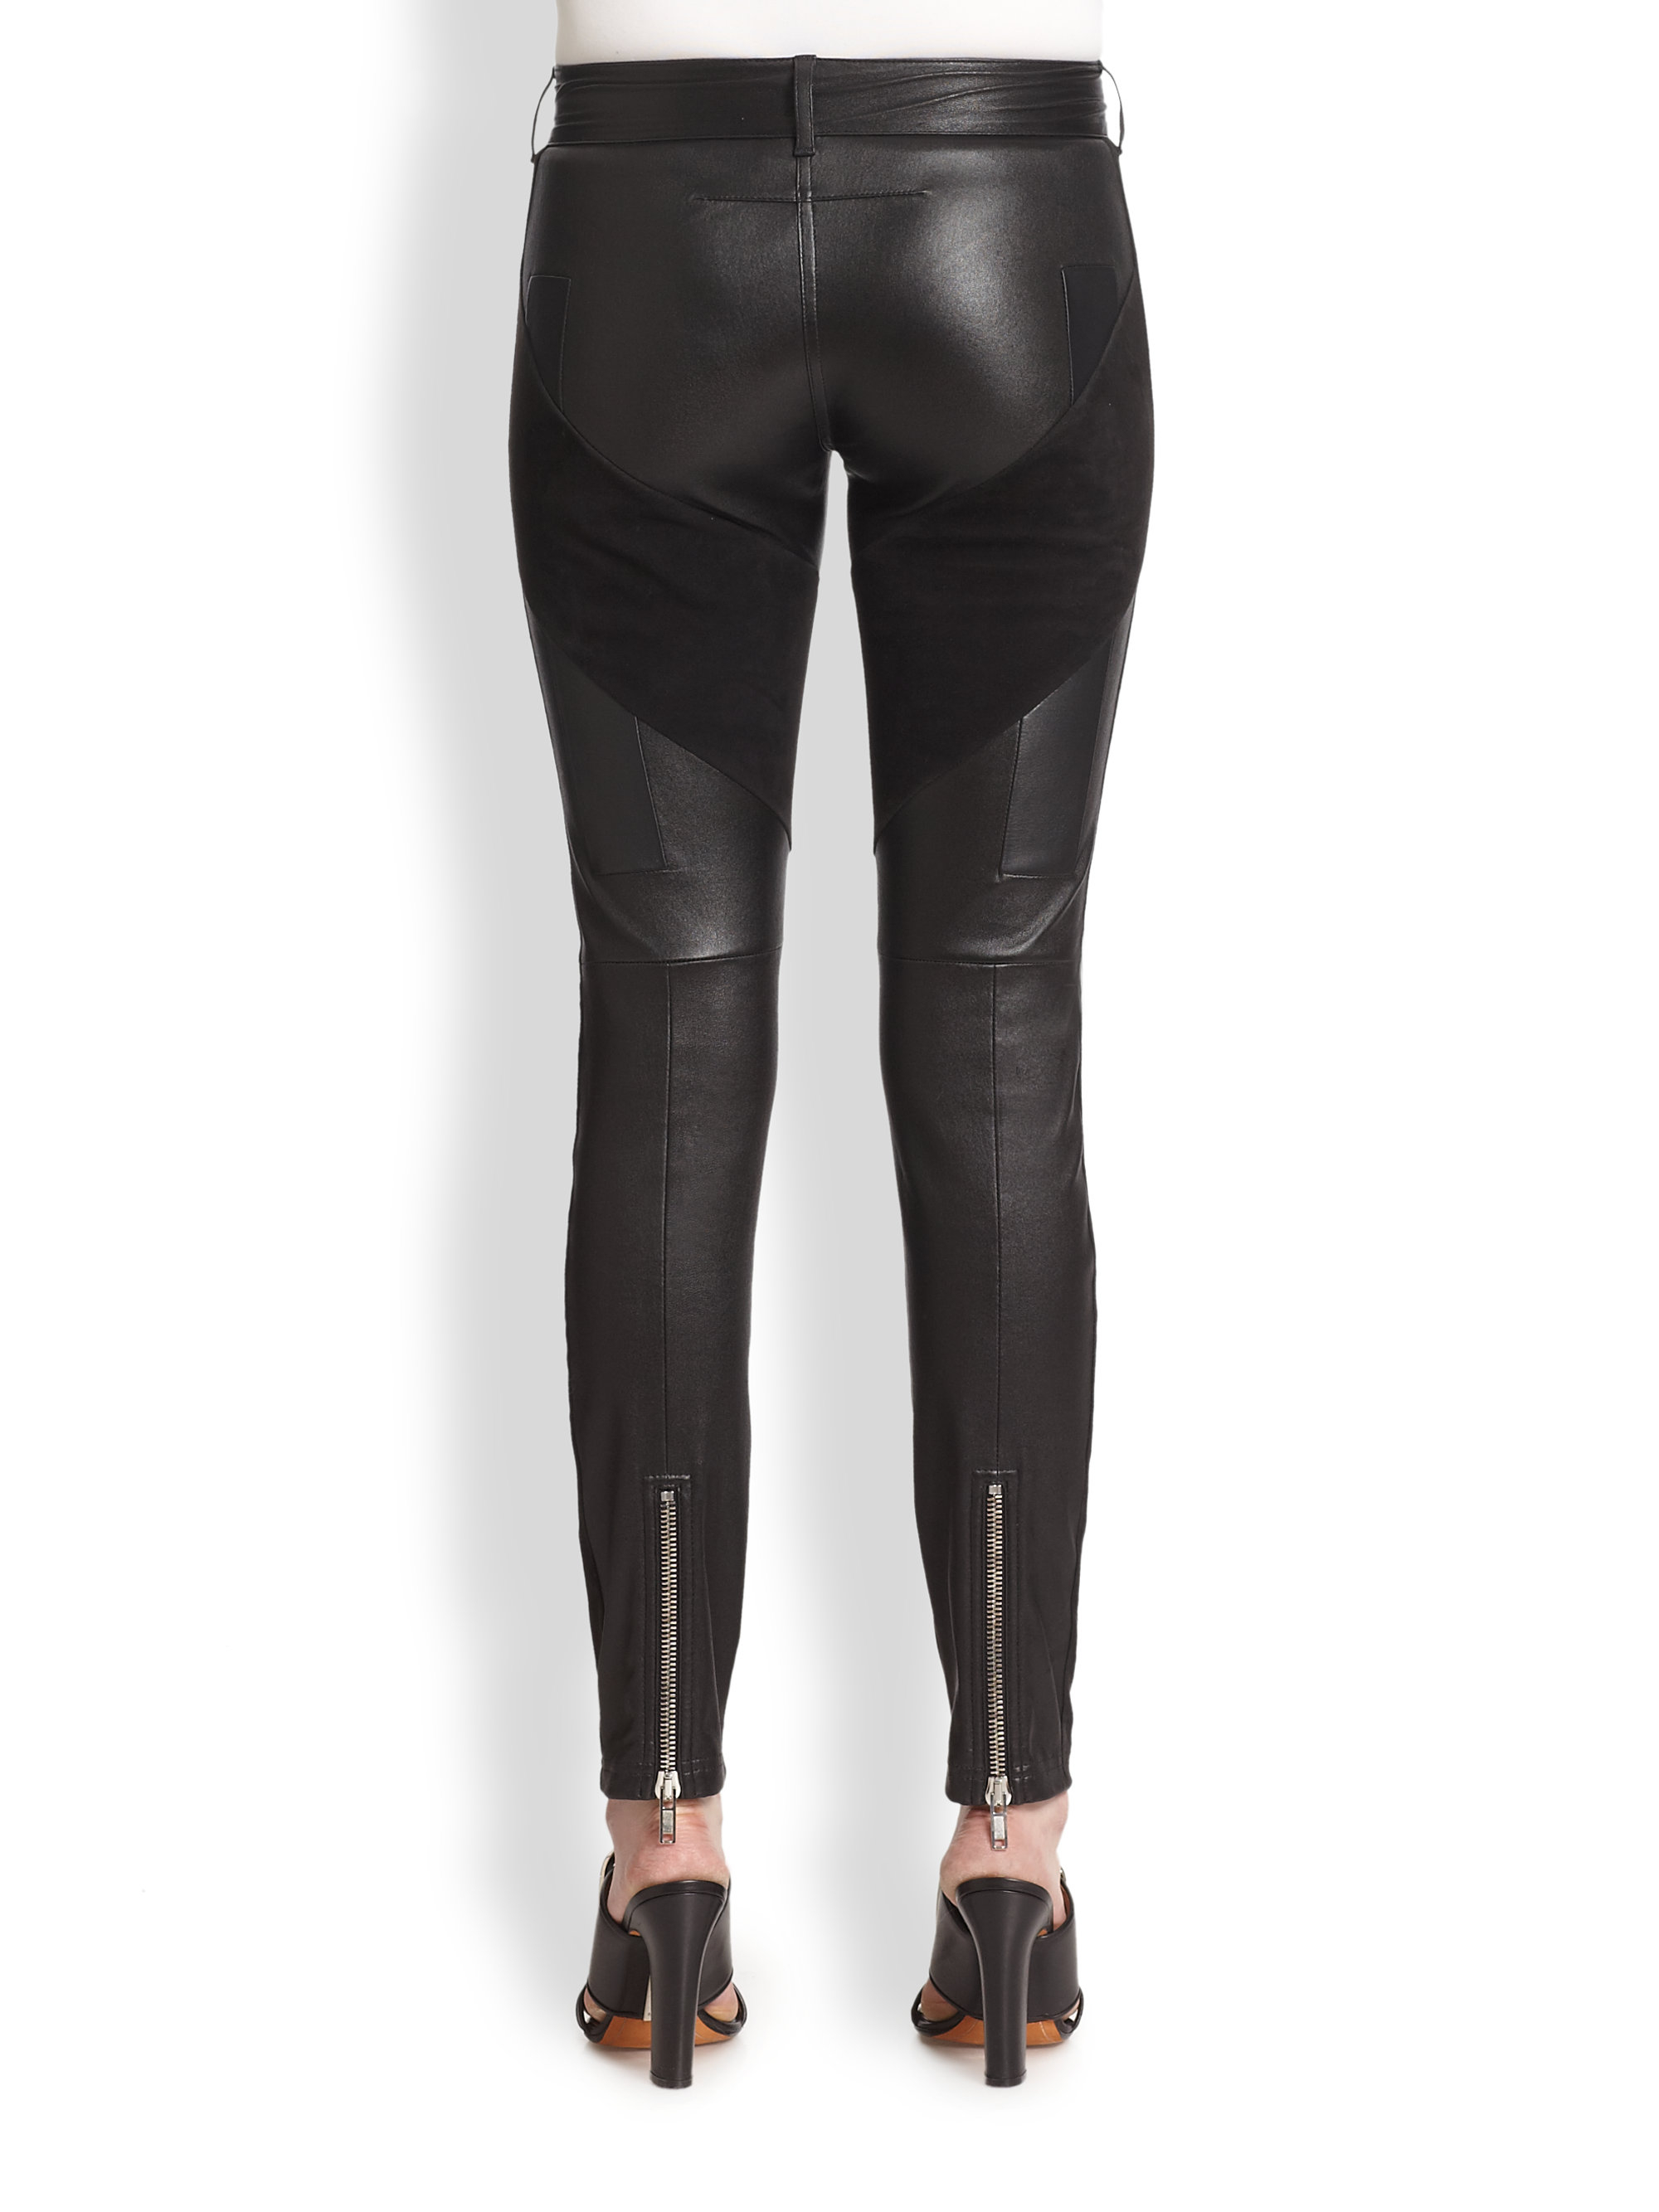 Givenchy Leather & Suede Leggings in Black | Lyst